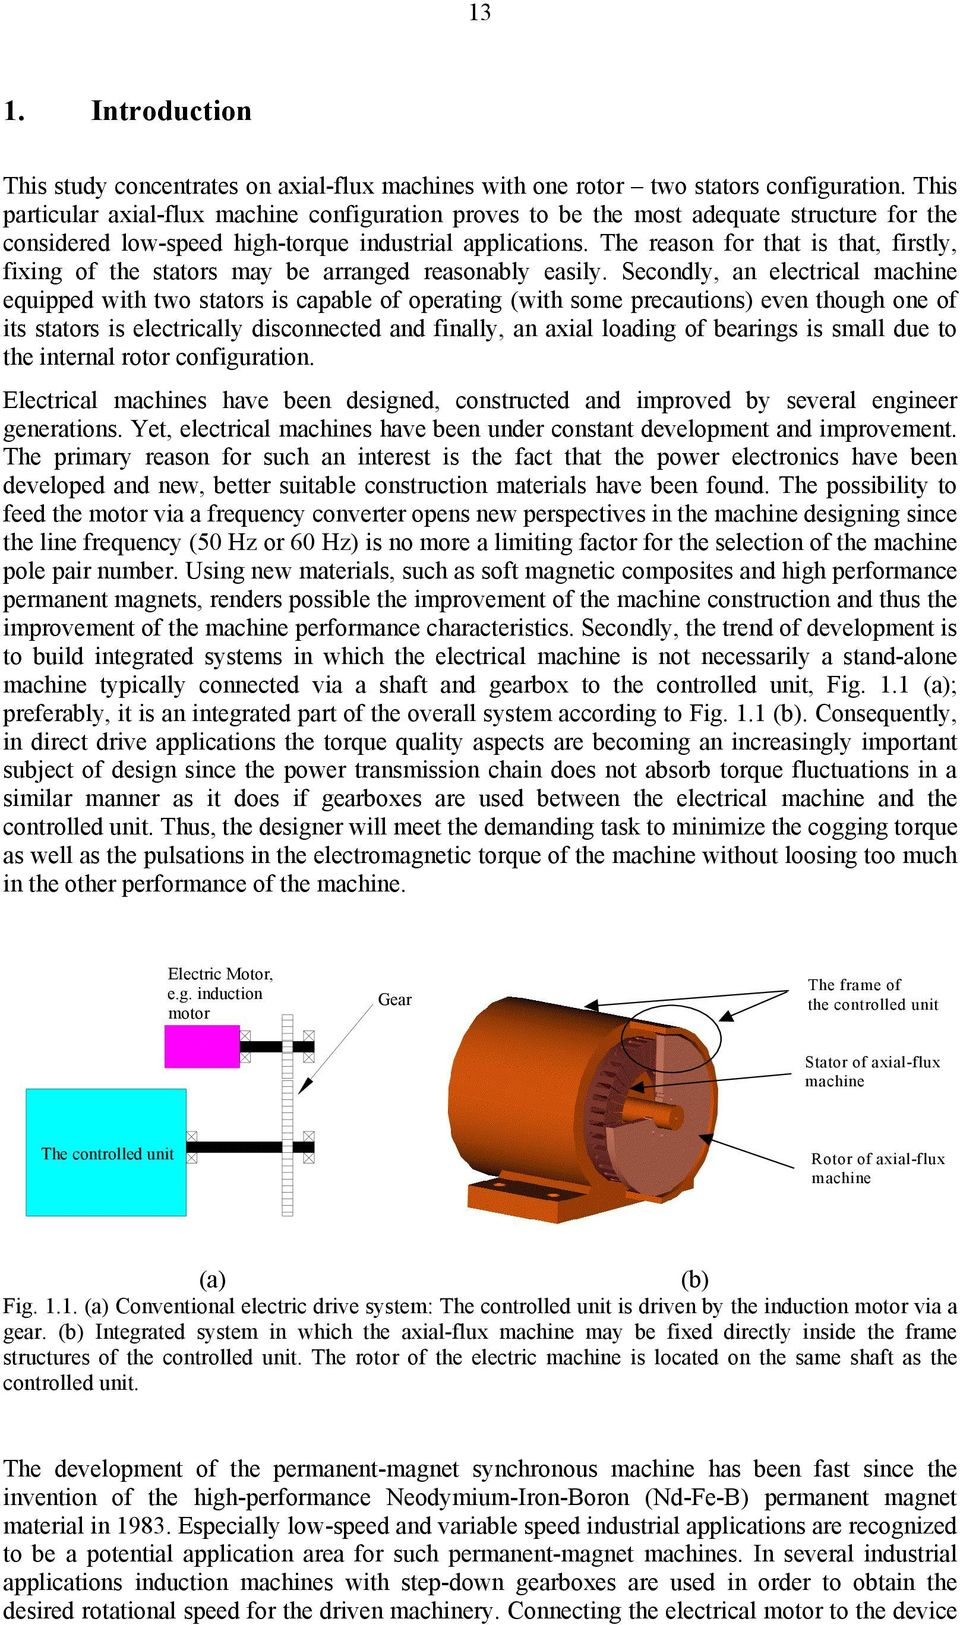 DESIGN OF AXIAL-FLUX PERMANENT-MAGNET LOW-SPEED MACHINES AND